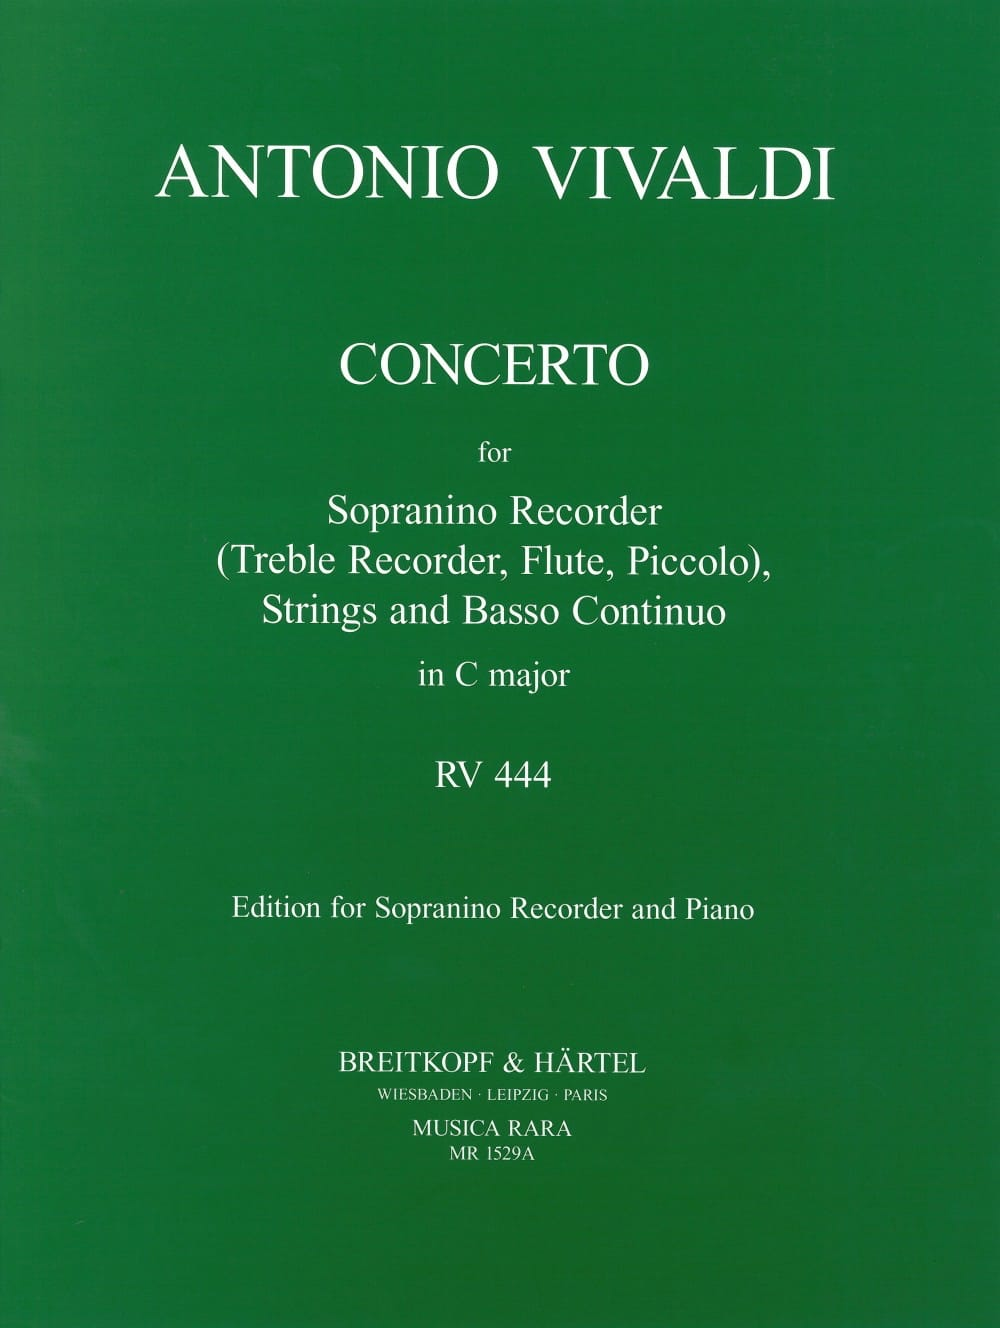 Concerto Rv 444 en Do Majeur - VIVALDI - Partition - laflutedepan.com